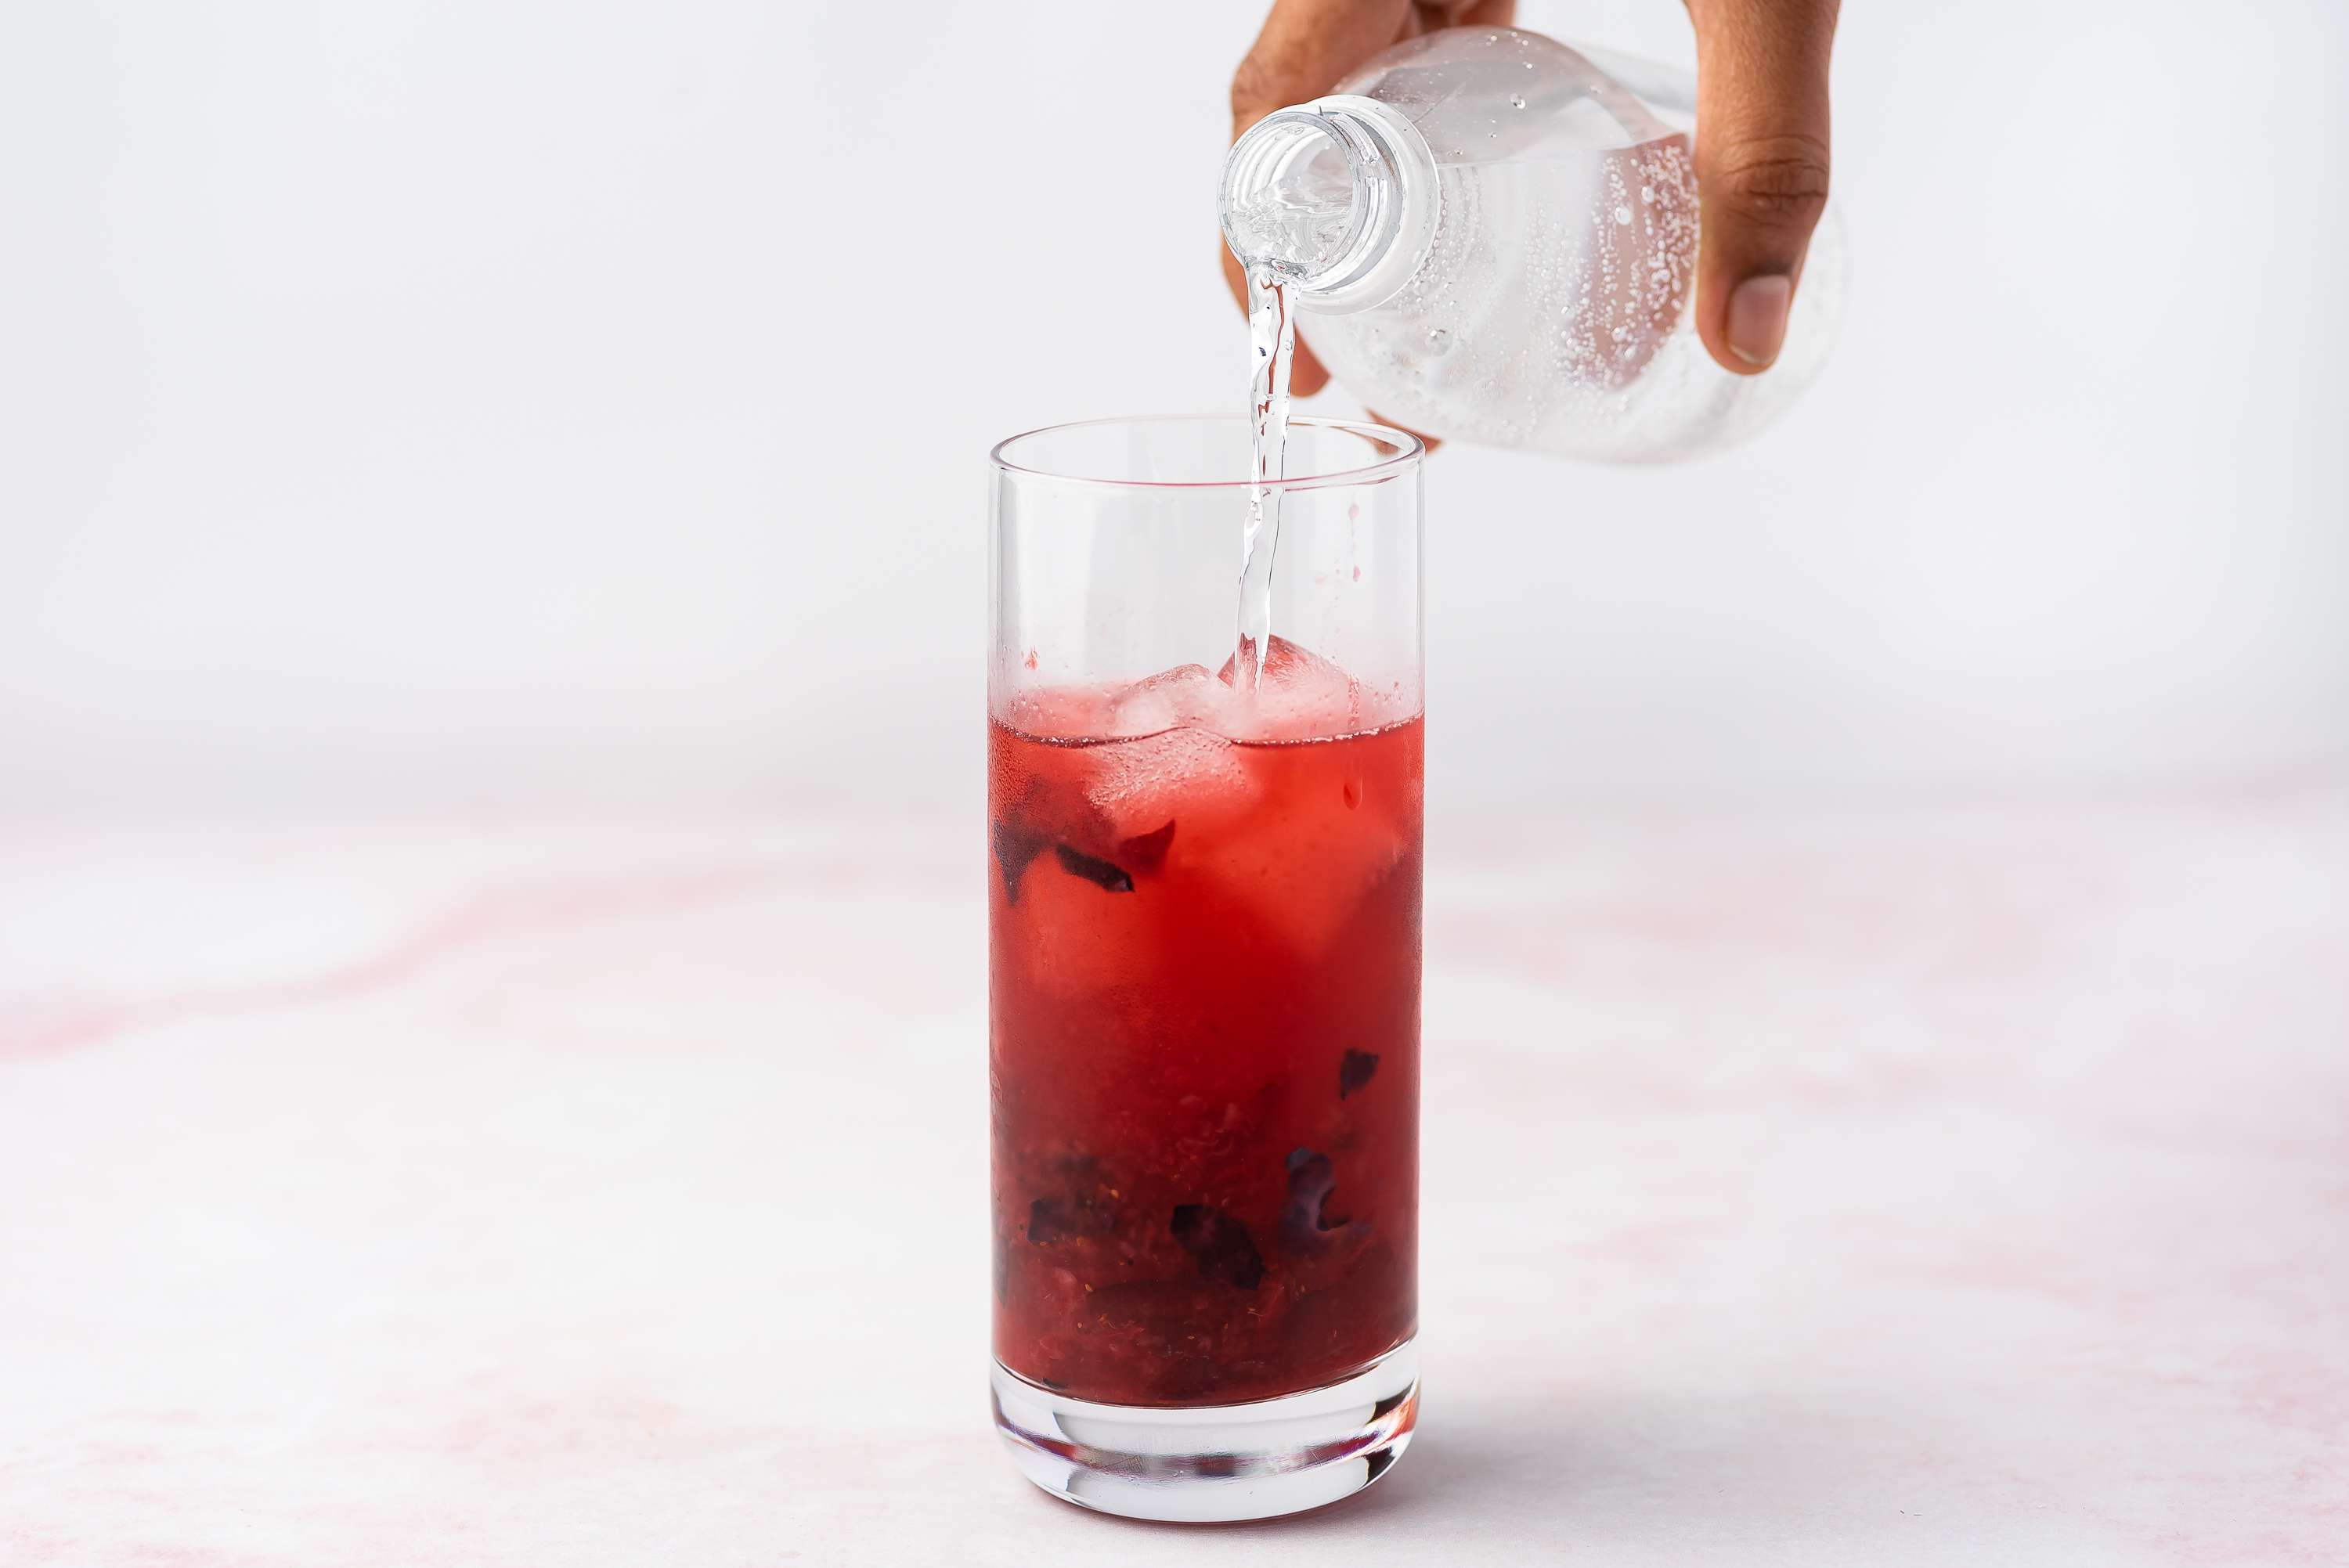 add club soda to the mixture in the glass